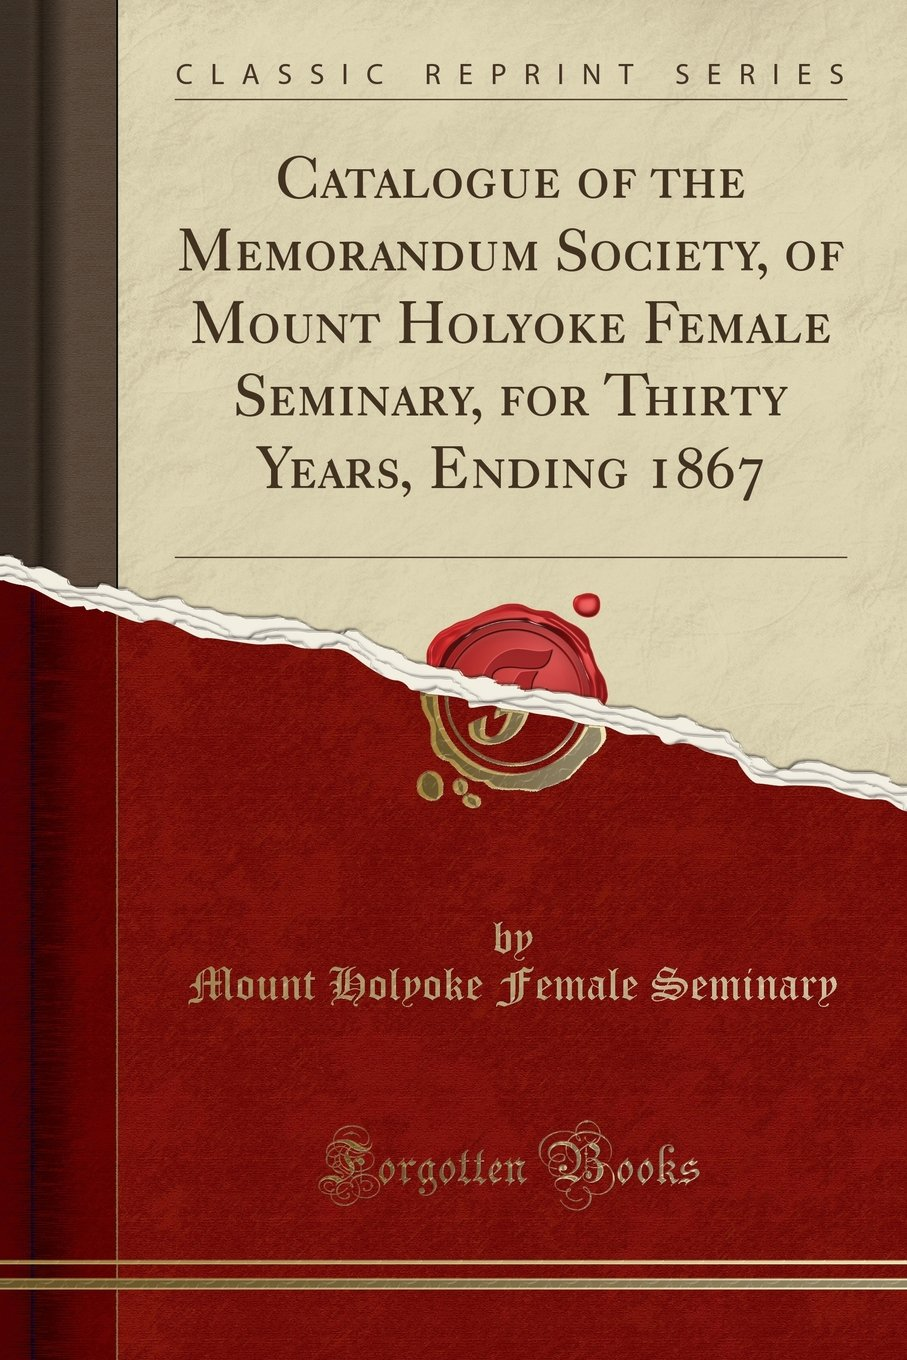 Download Catalogue of the Memorandum Society, of Mount Holyoke Female Seminary, for Thirty Years, Ending 1867 (Classic Reprint) pdf